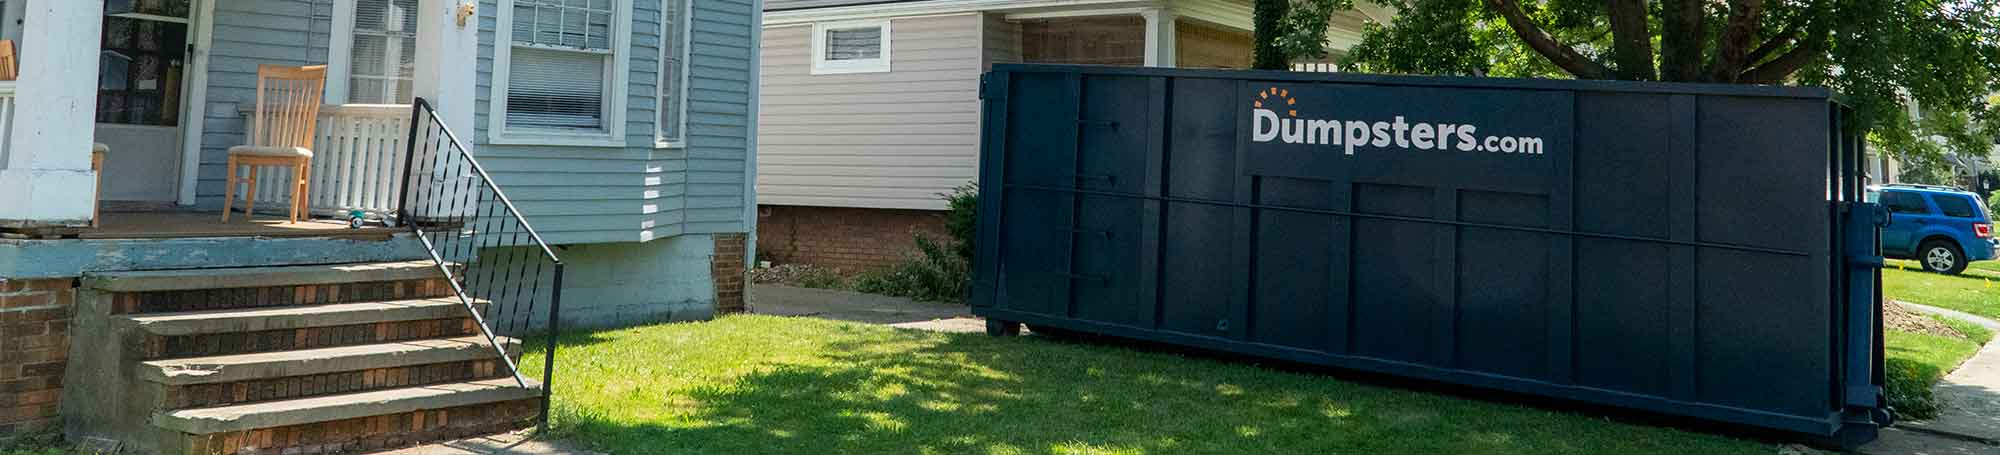 Roll Off Dumpster in Residential Driveway Next to a Blue House.